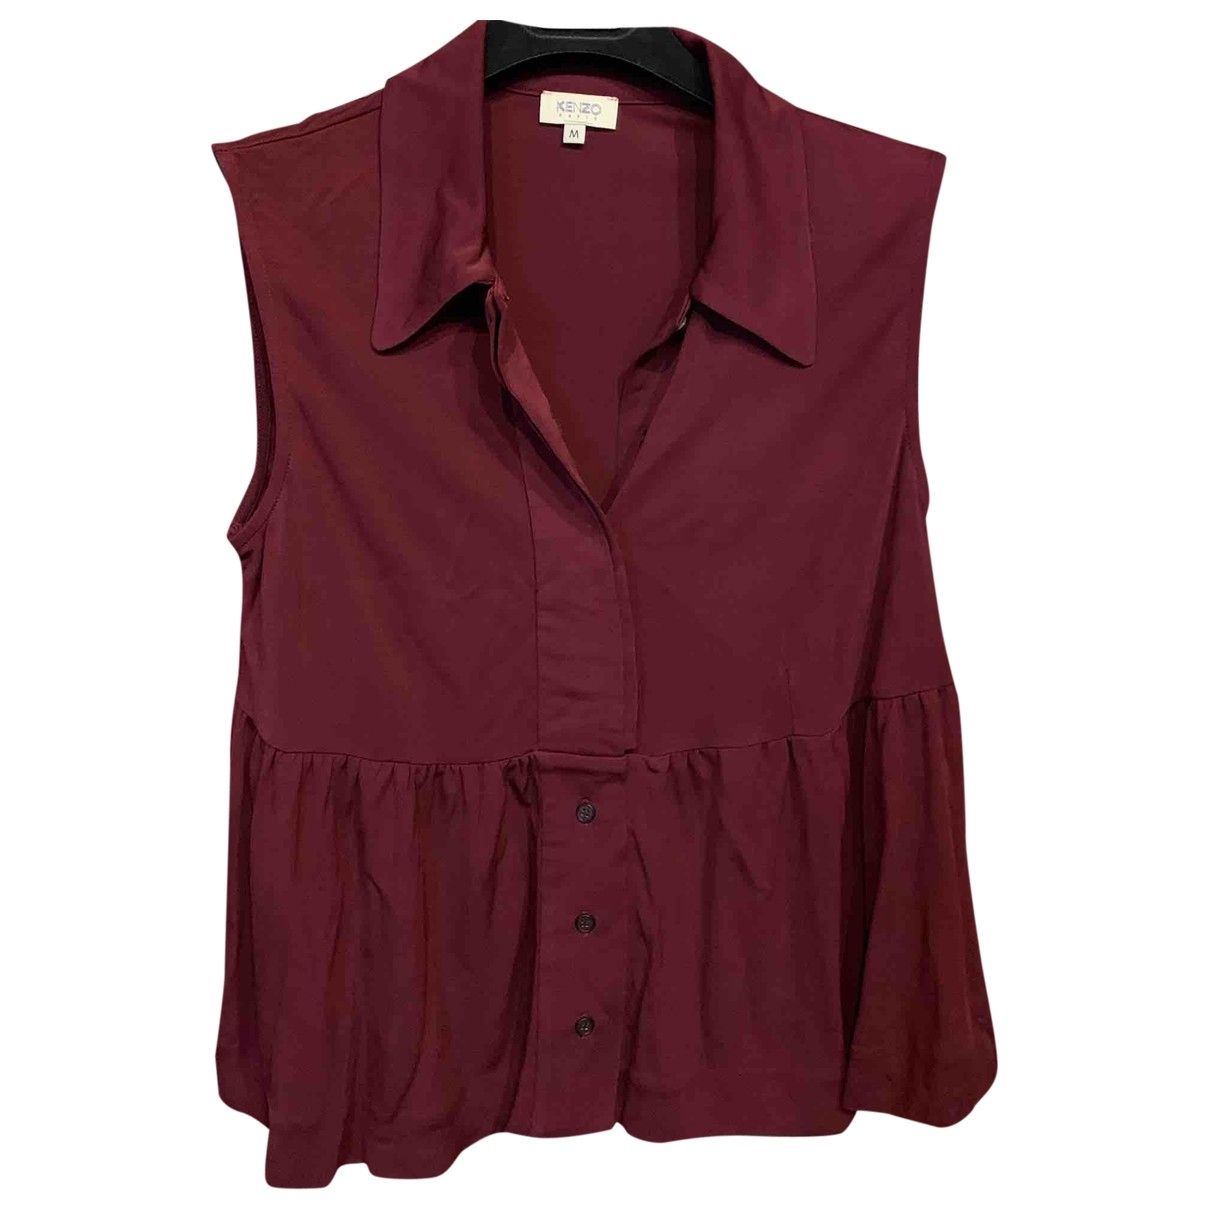 Kenzo \N Burgundy  top for Women M International